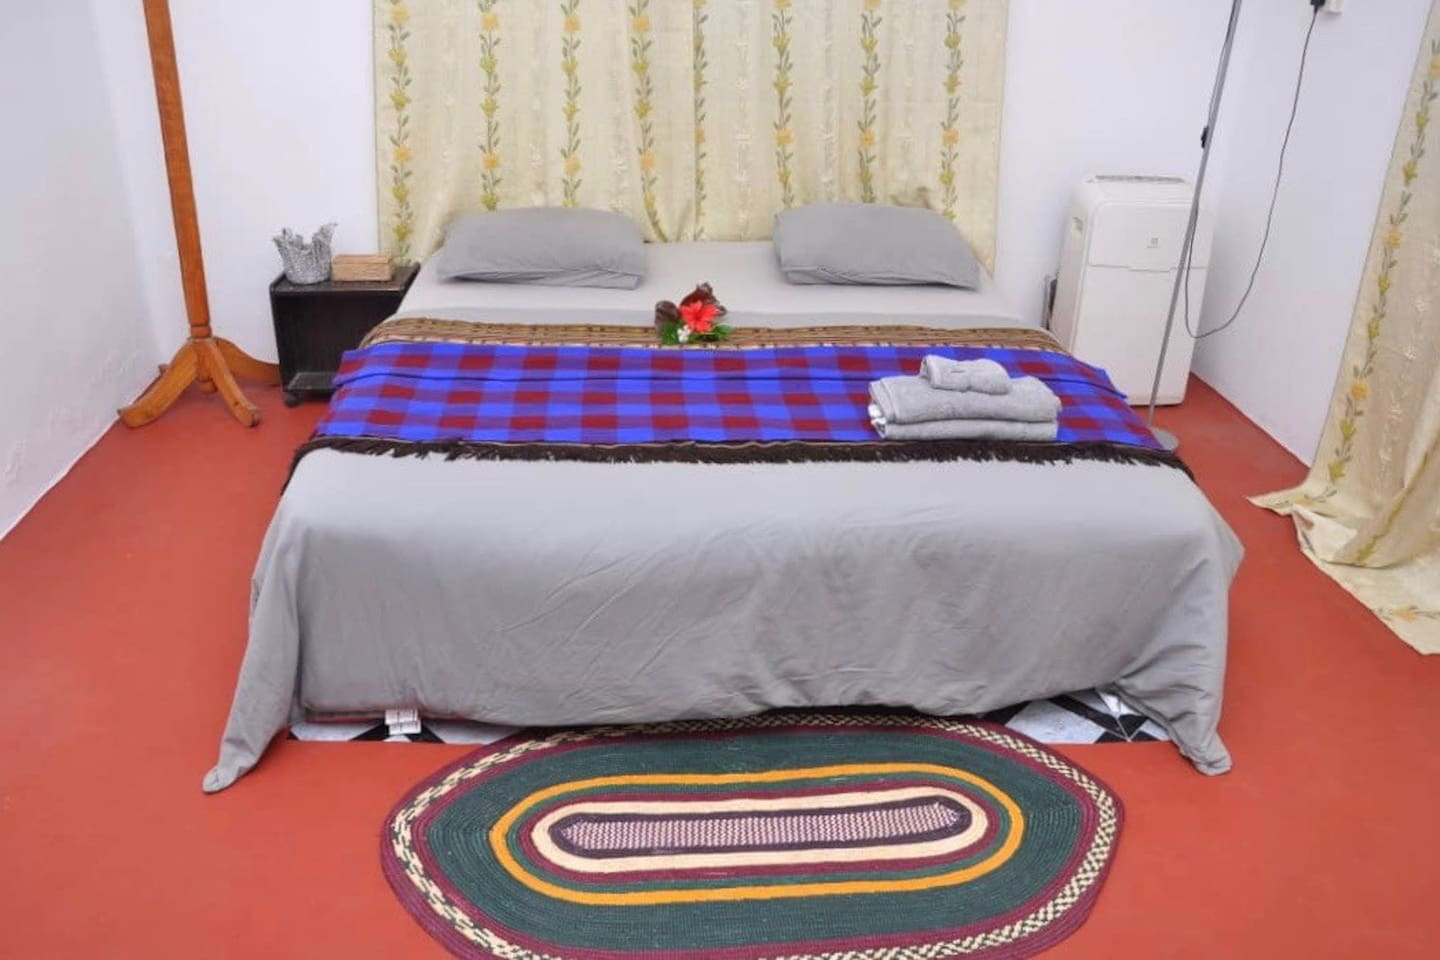 Here is your private space for the duration of your stay. Simple and elegant. Towels, bedsheets, bed table and curtains for privacy.